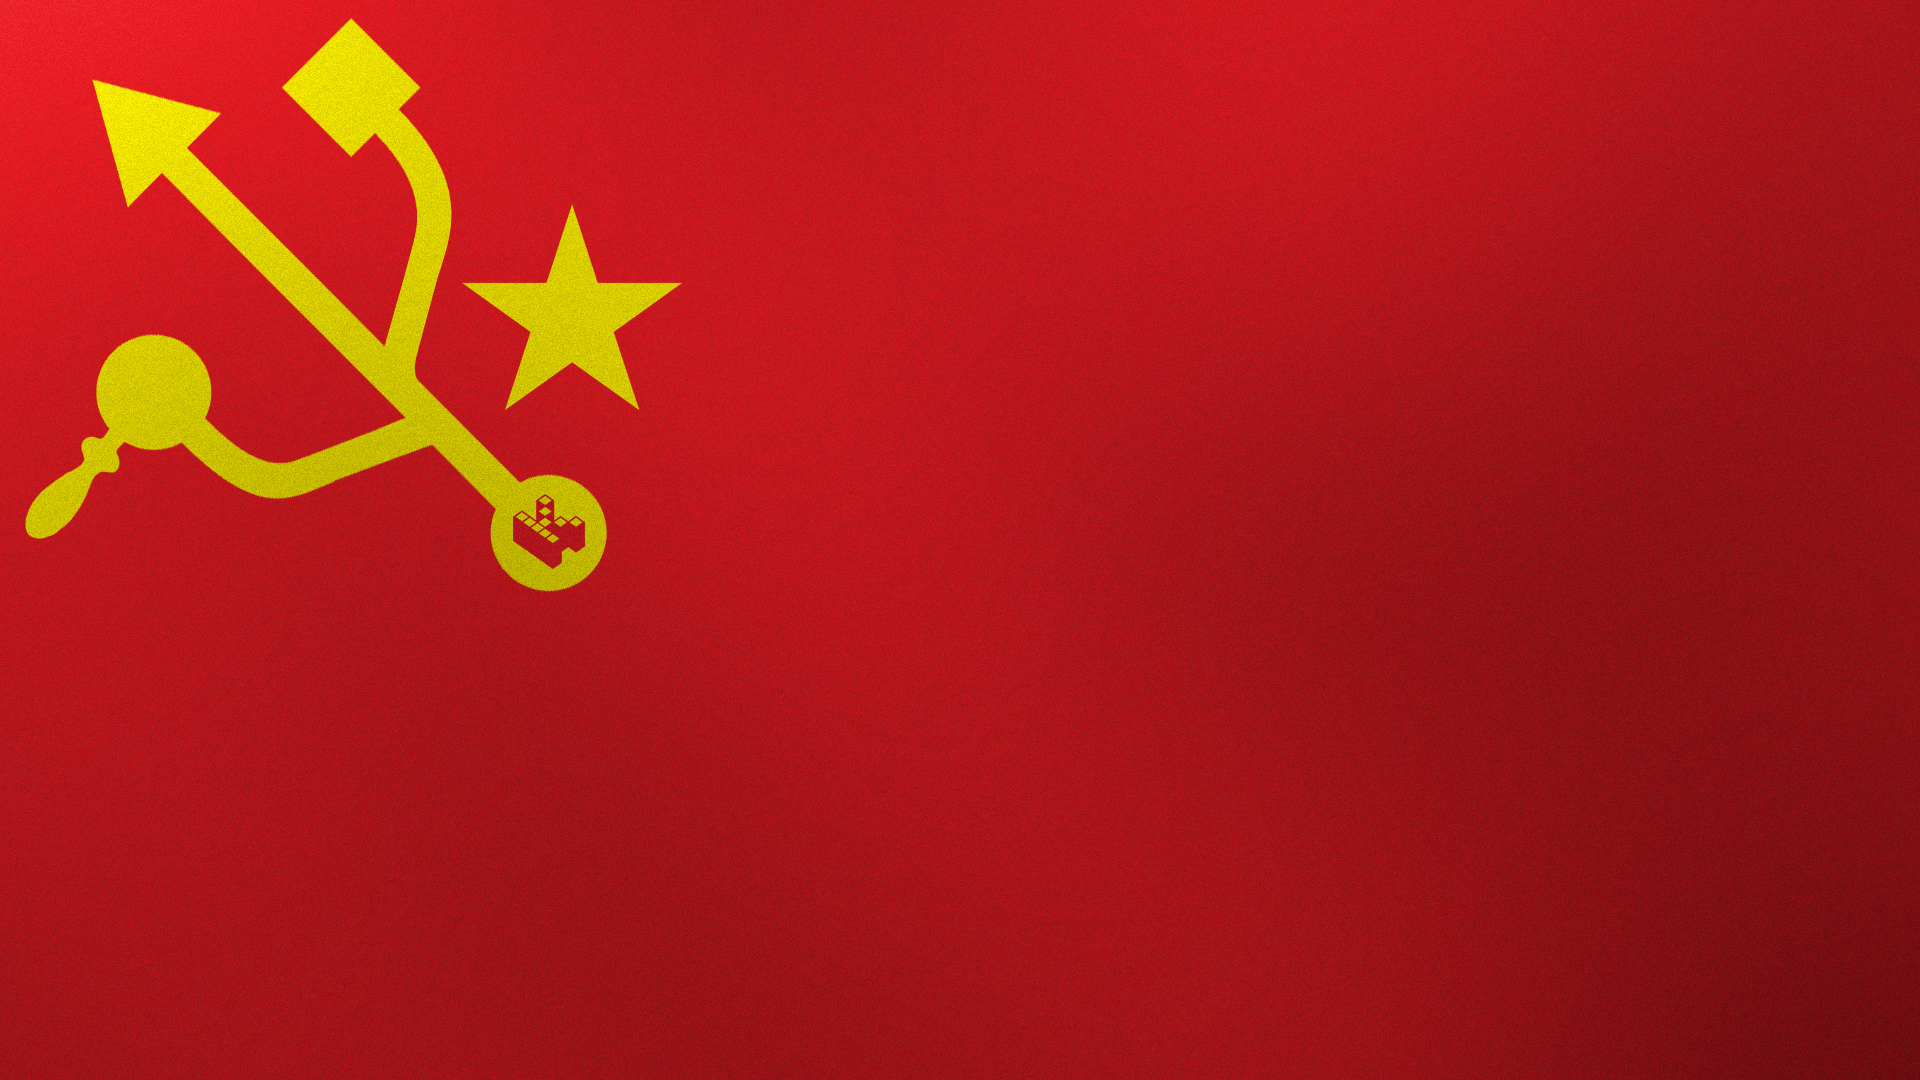 Ussr 2 - Ussr wallpaper ...